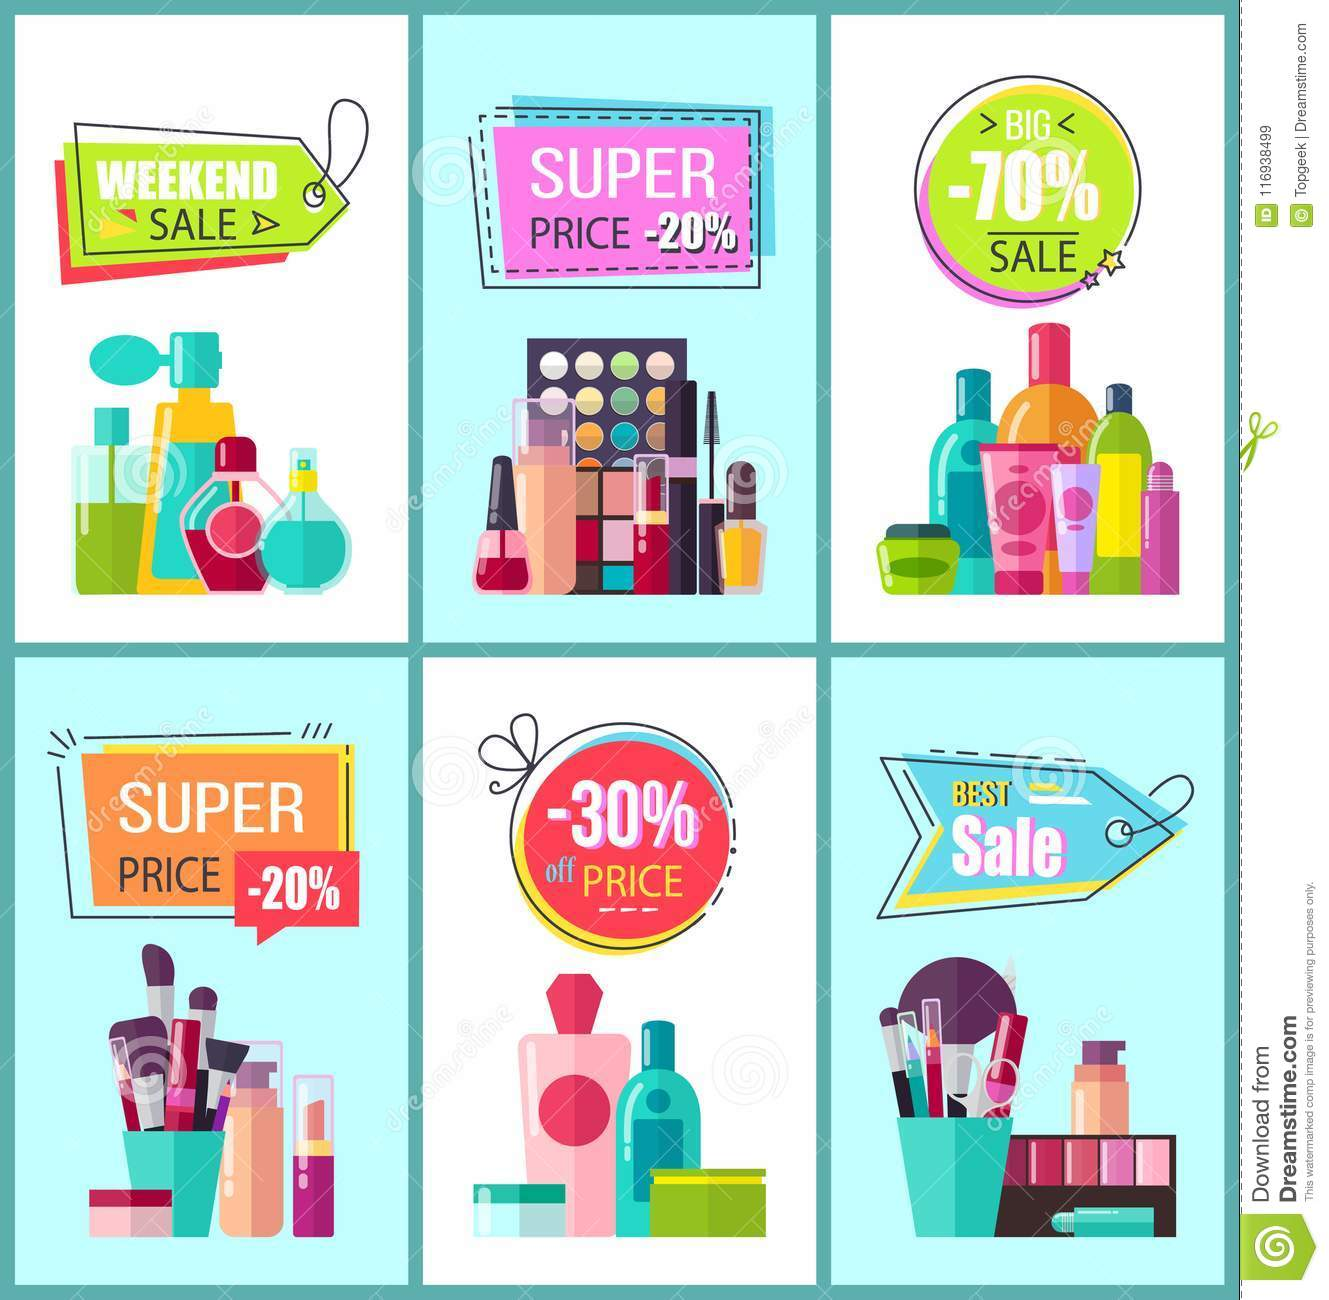 super price for decorative and medical cosmetics stock vector